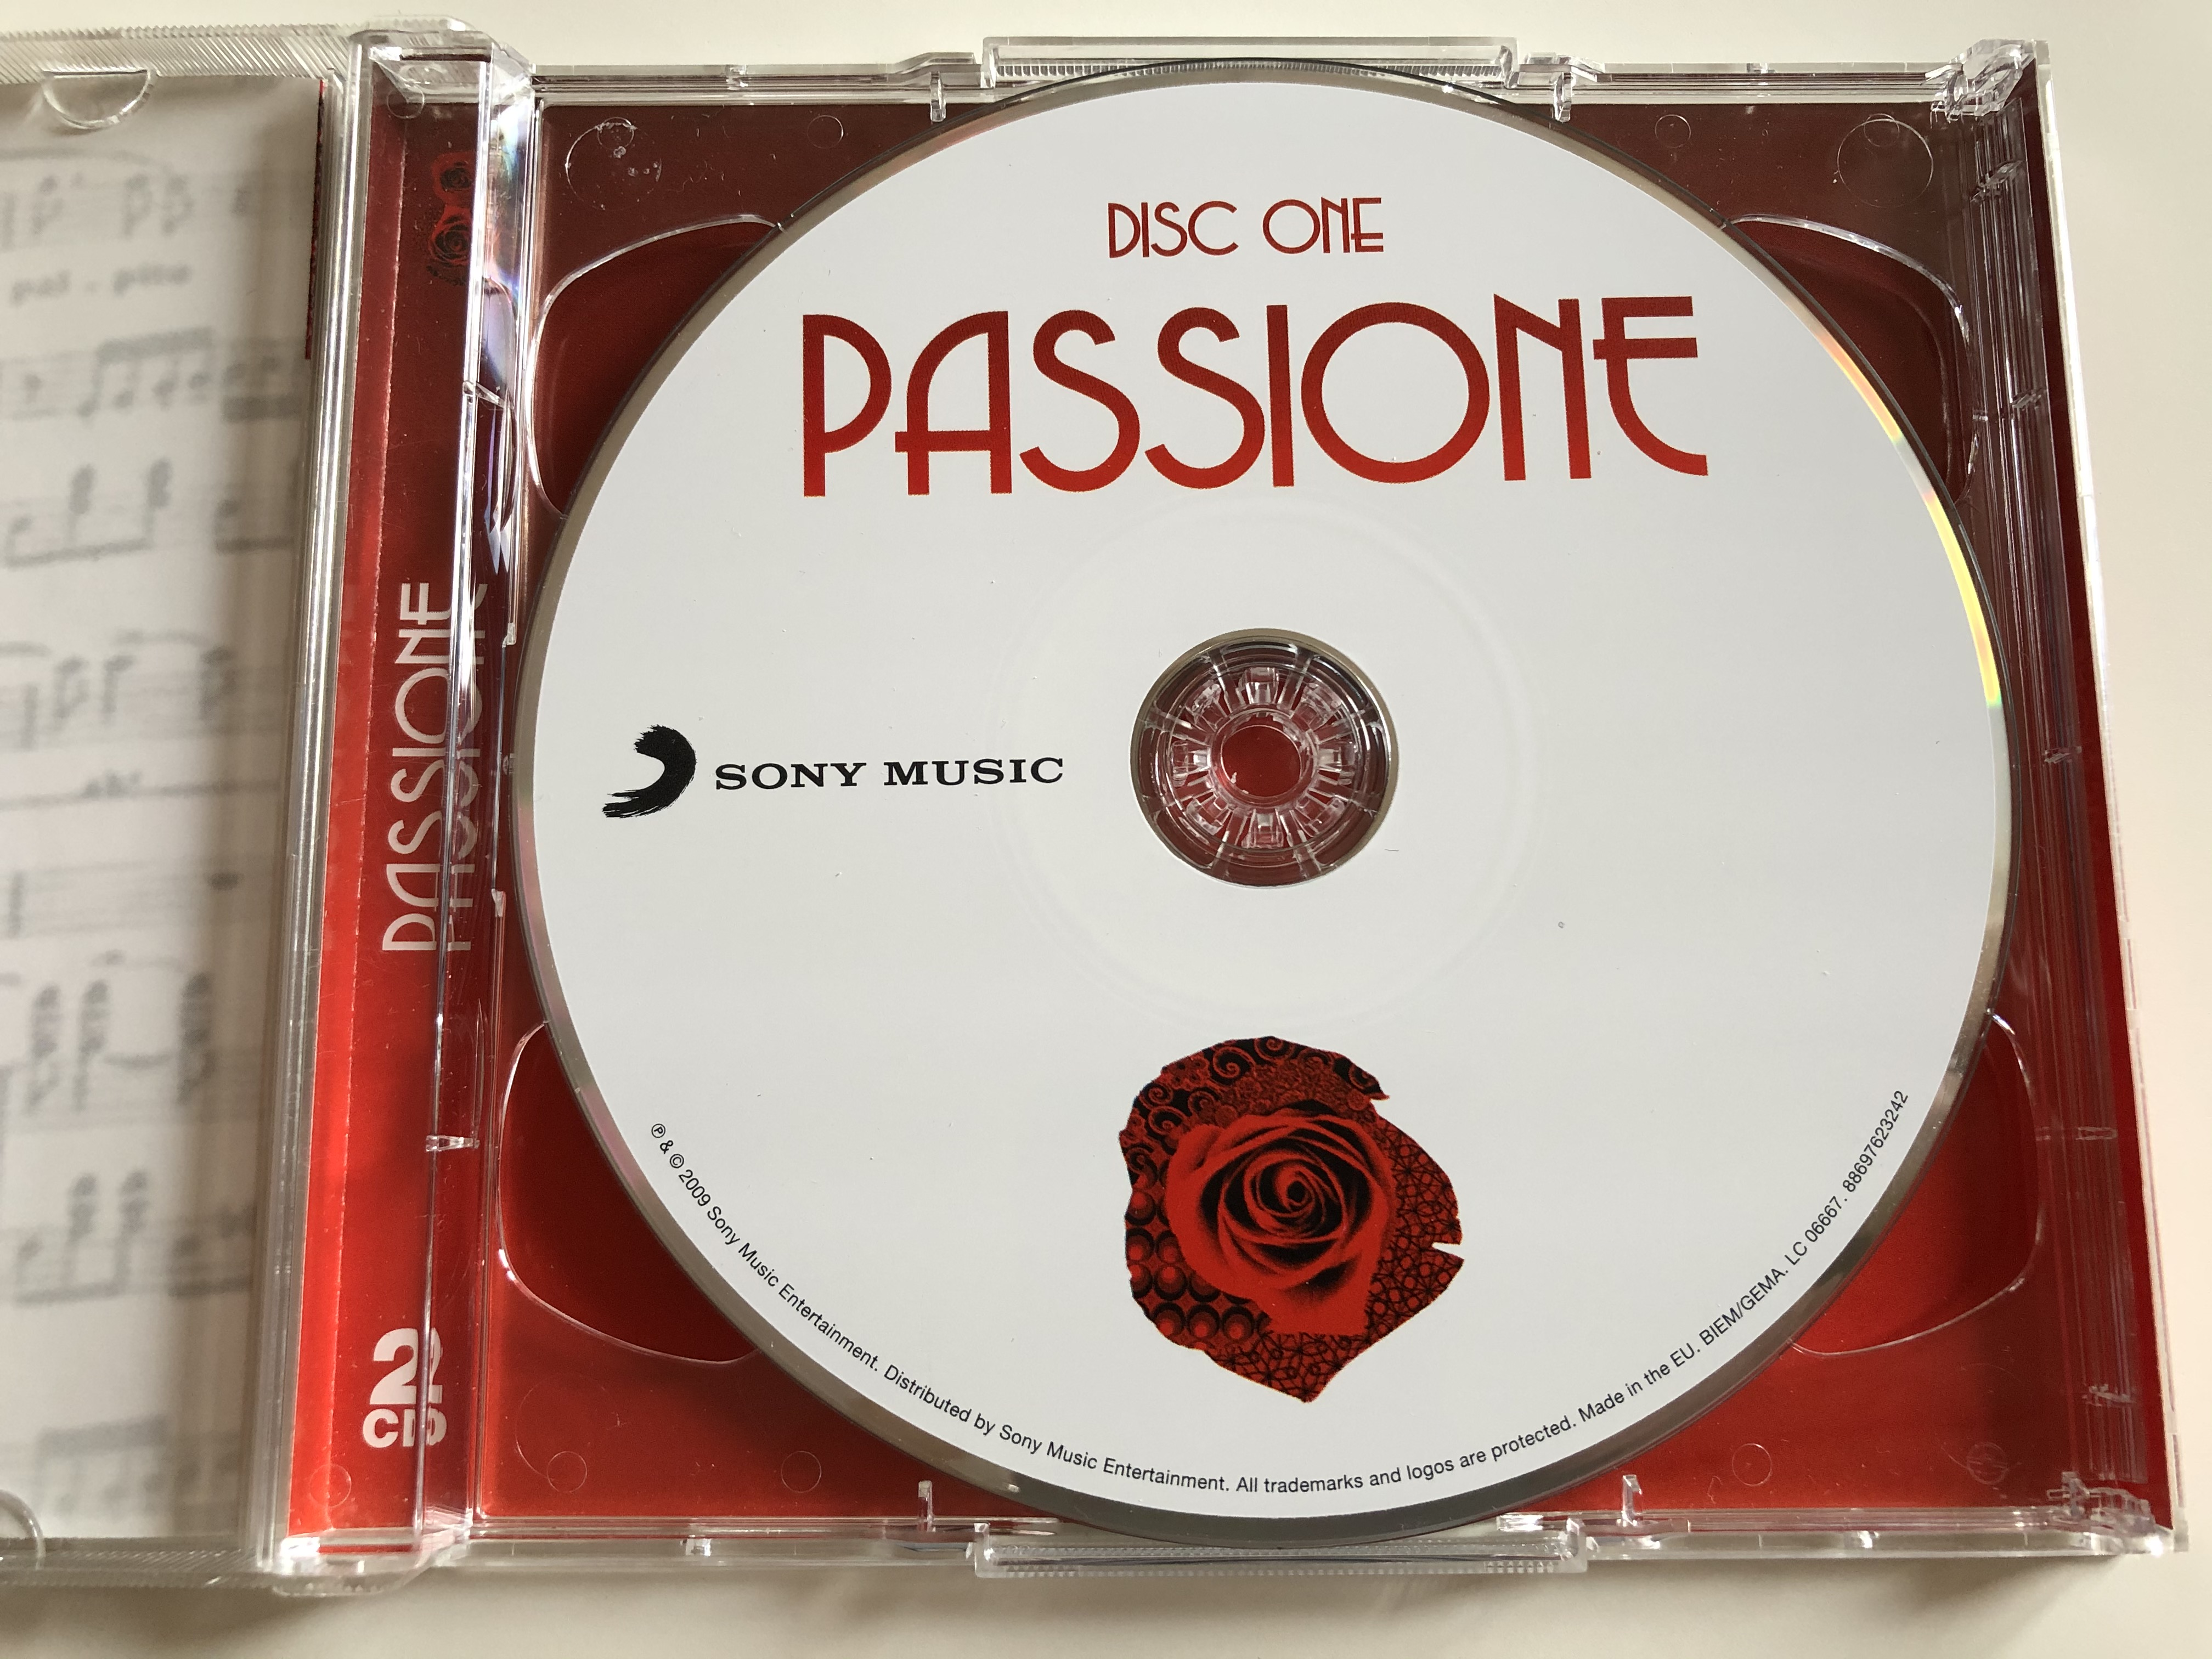 classic-interpreations-of-opera-and-pop-by-the-world-s-greatest-voices-passione-featuring-il-divo-luciano-pavarotti-malena-ernman-paul-potts-placido-domingo-jussi-bjorling-sarah-brightma-5-.jpg